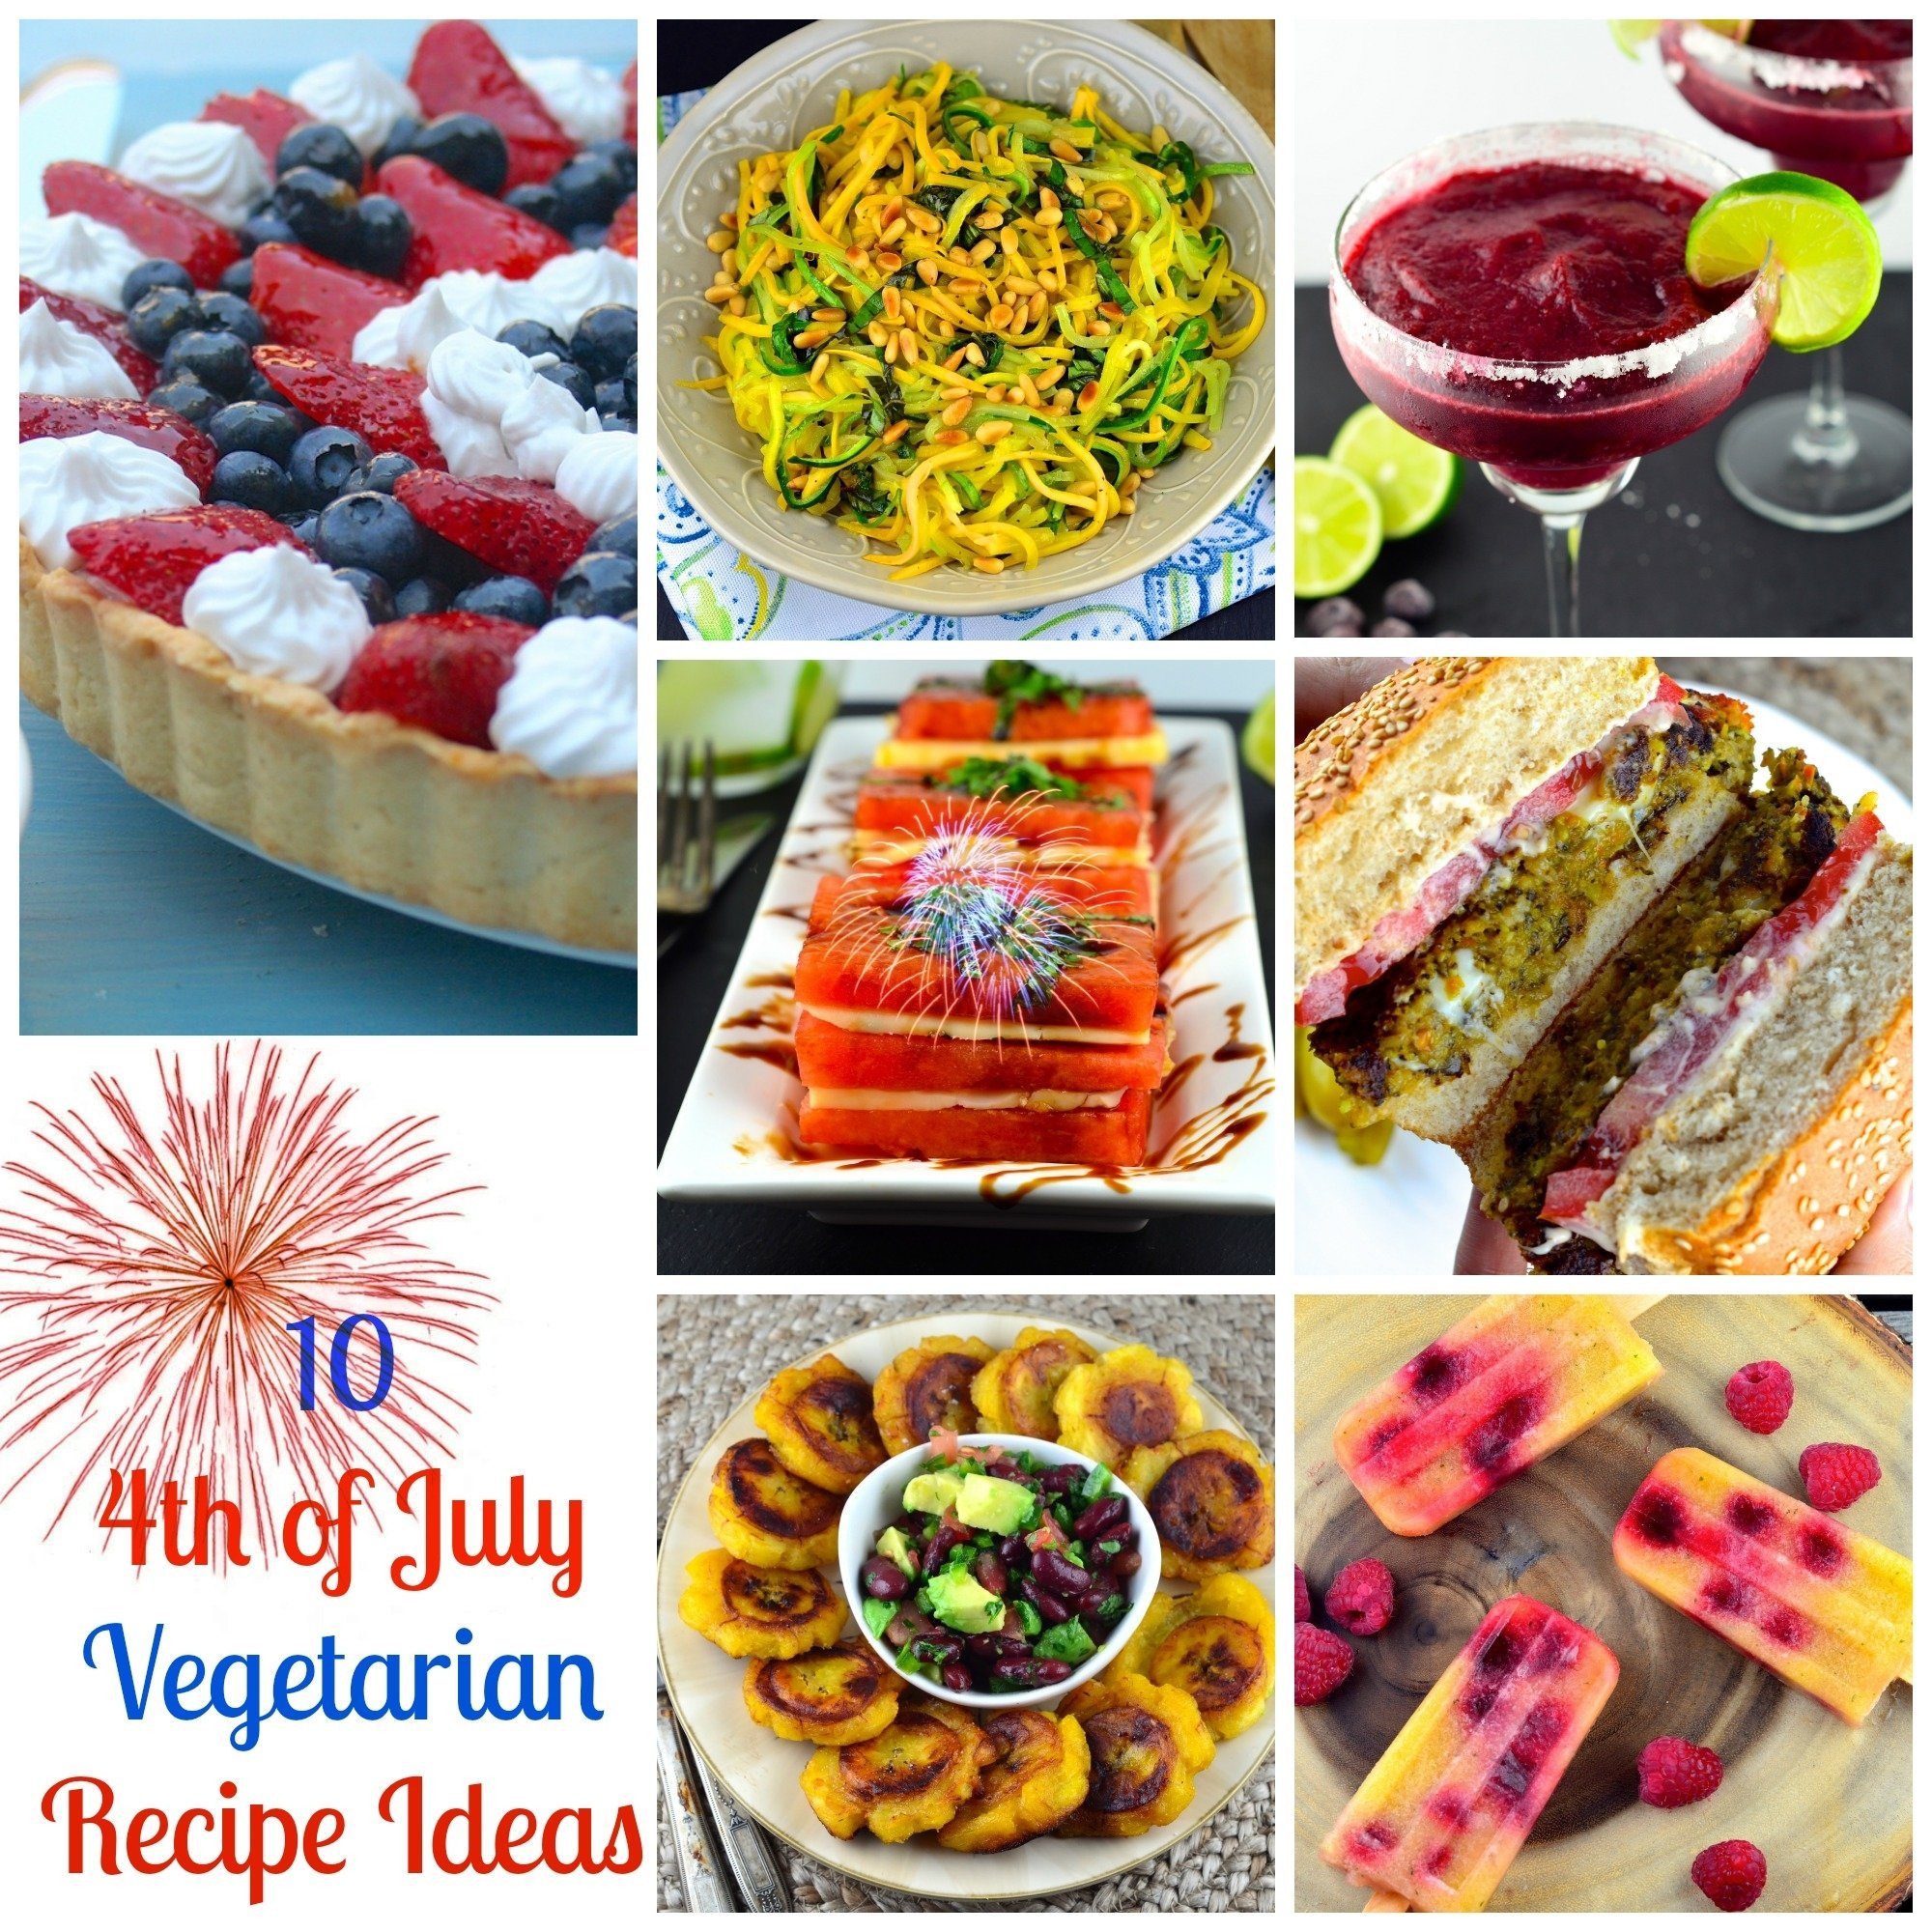 10 Lovely 4Th Of July Meal Ideas ten 4th of july vegetarian recipe ideas 8